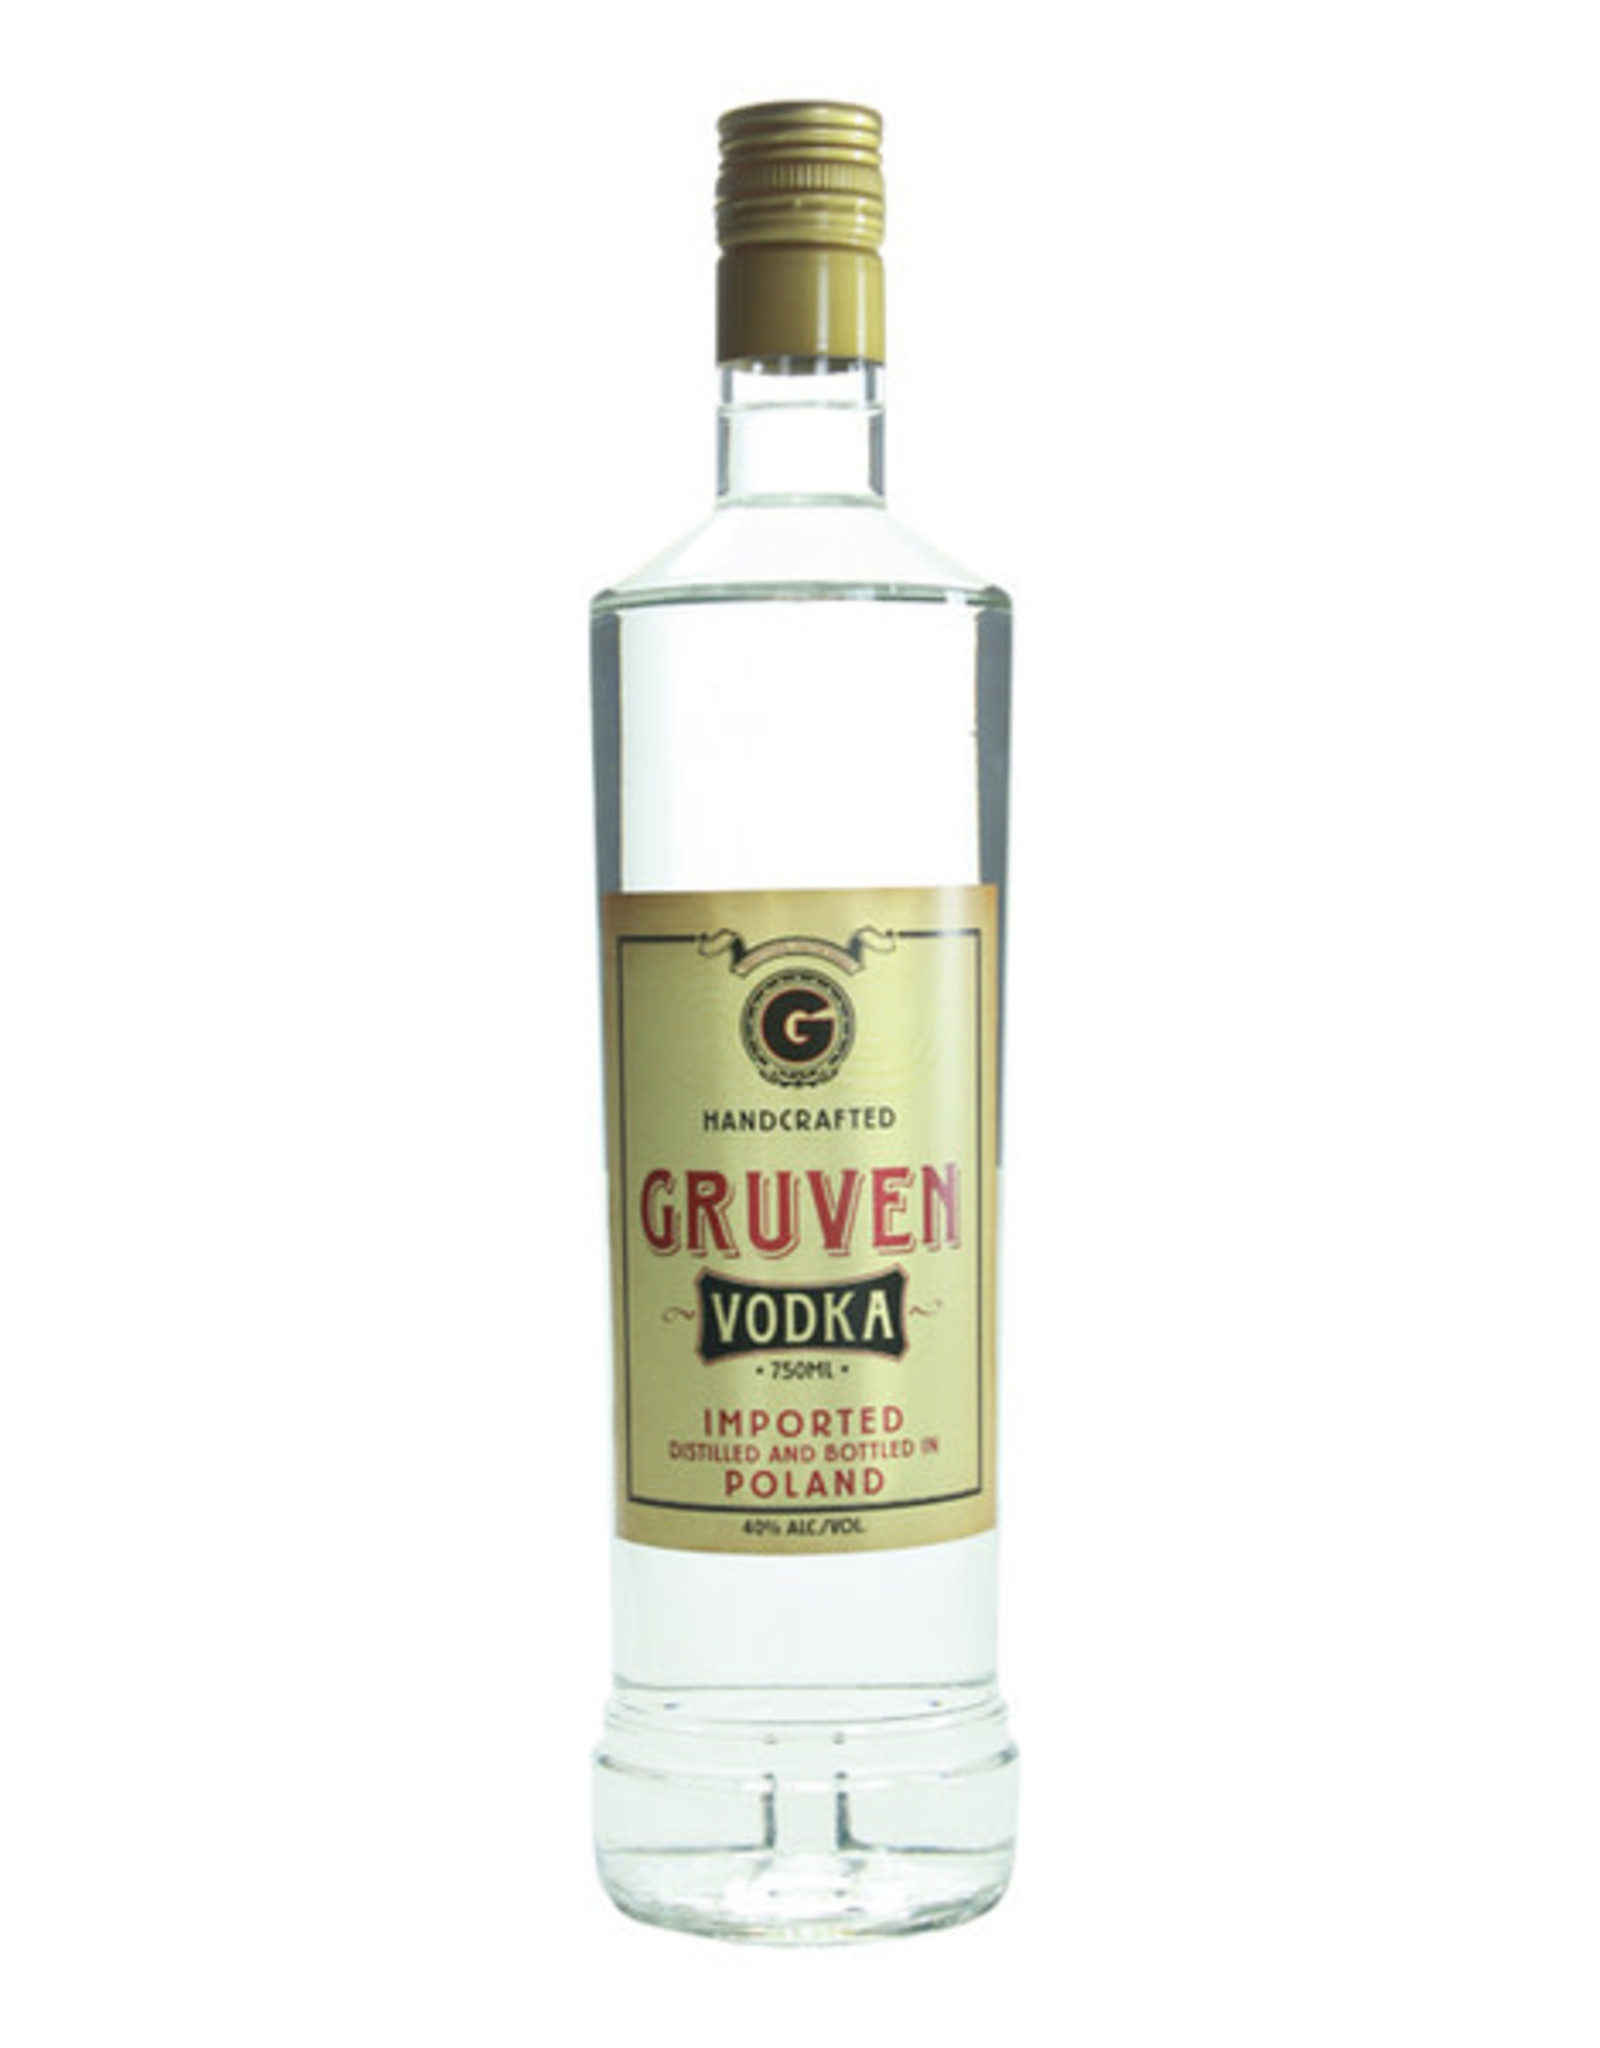 GRUVEN POLISH POTATO VODKA 750ML